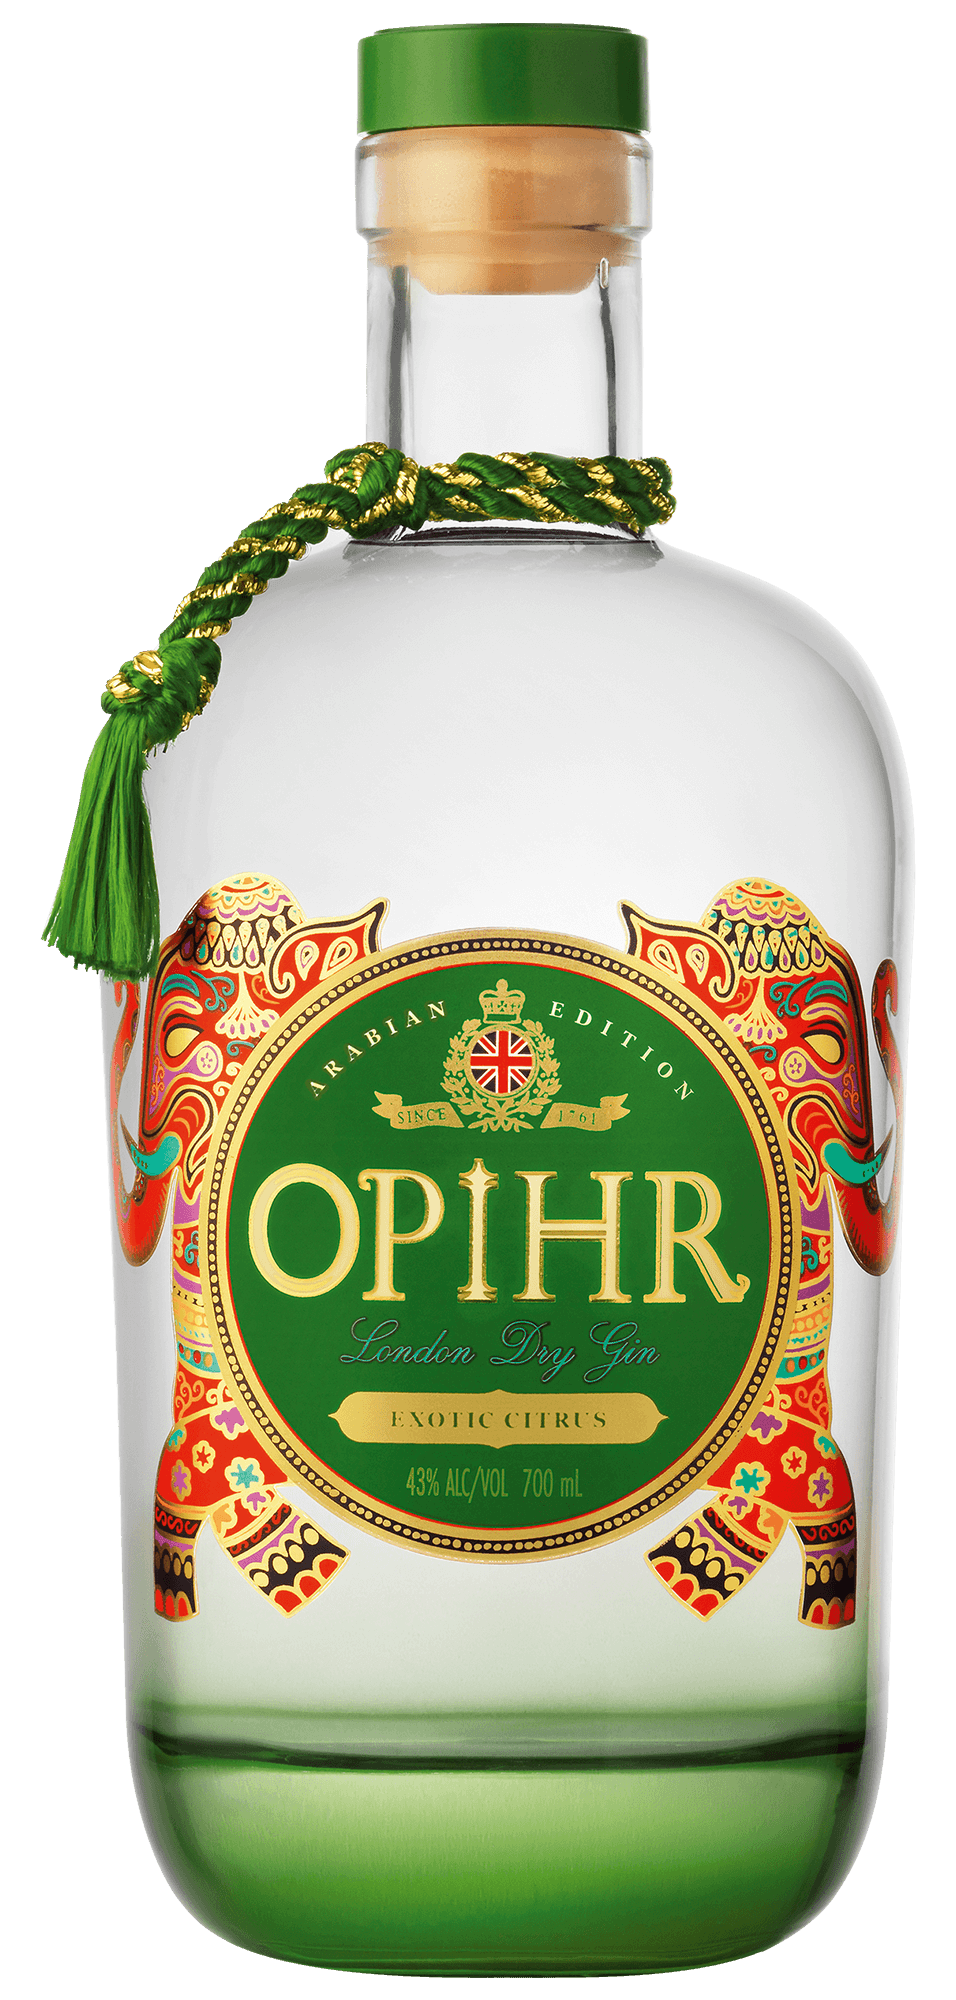 Opihr London Dry Gin Arabian Edition